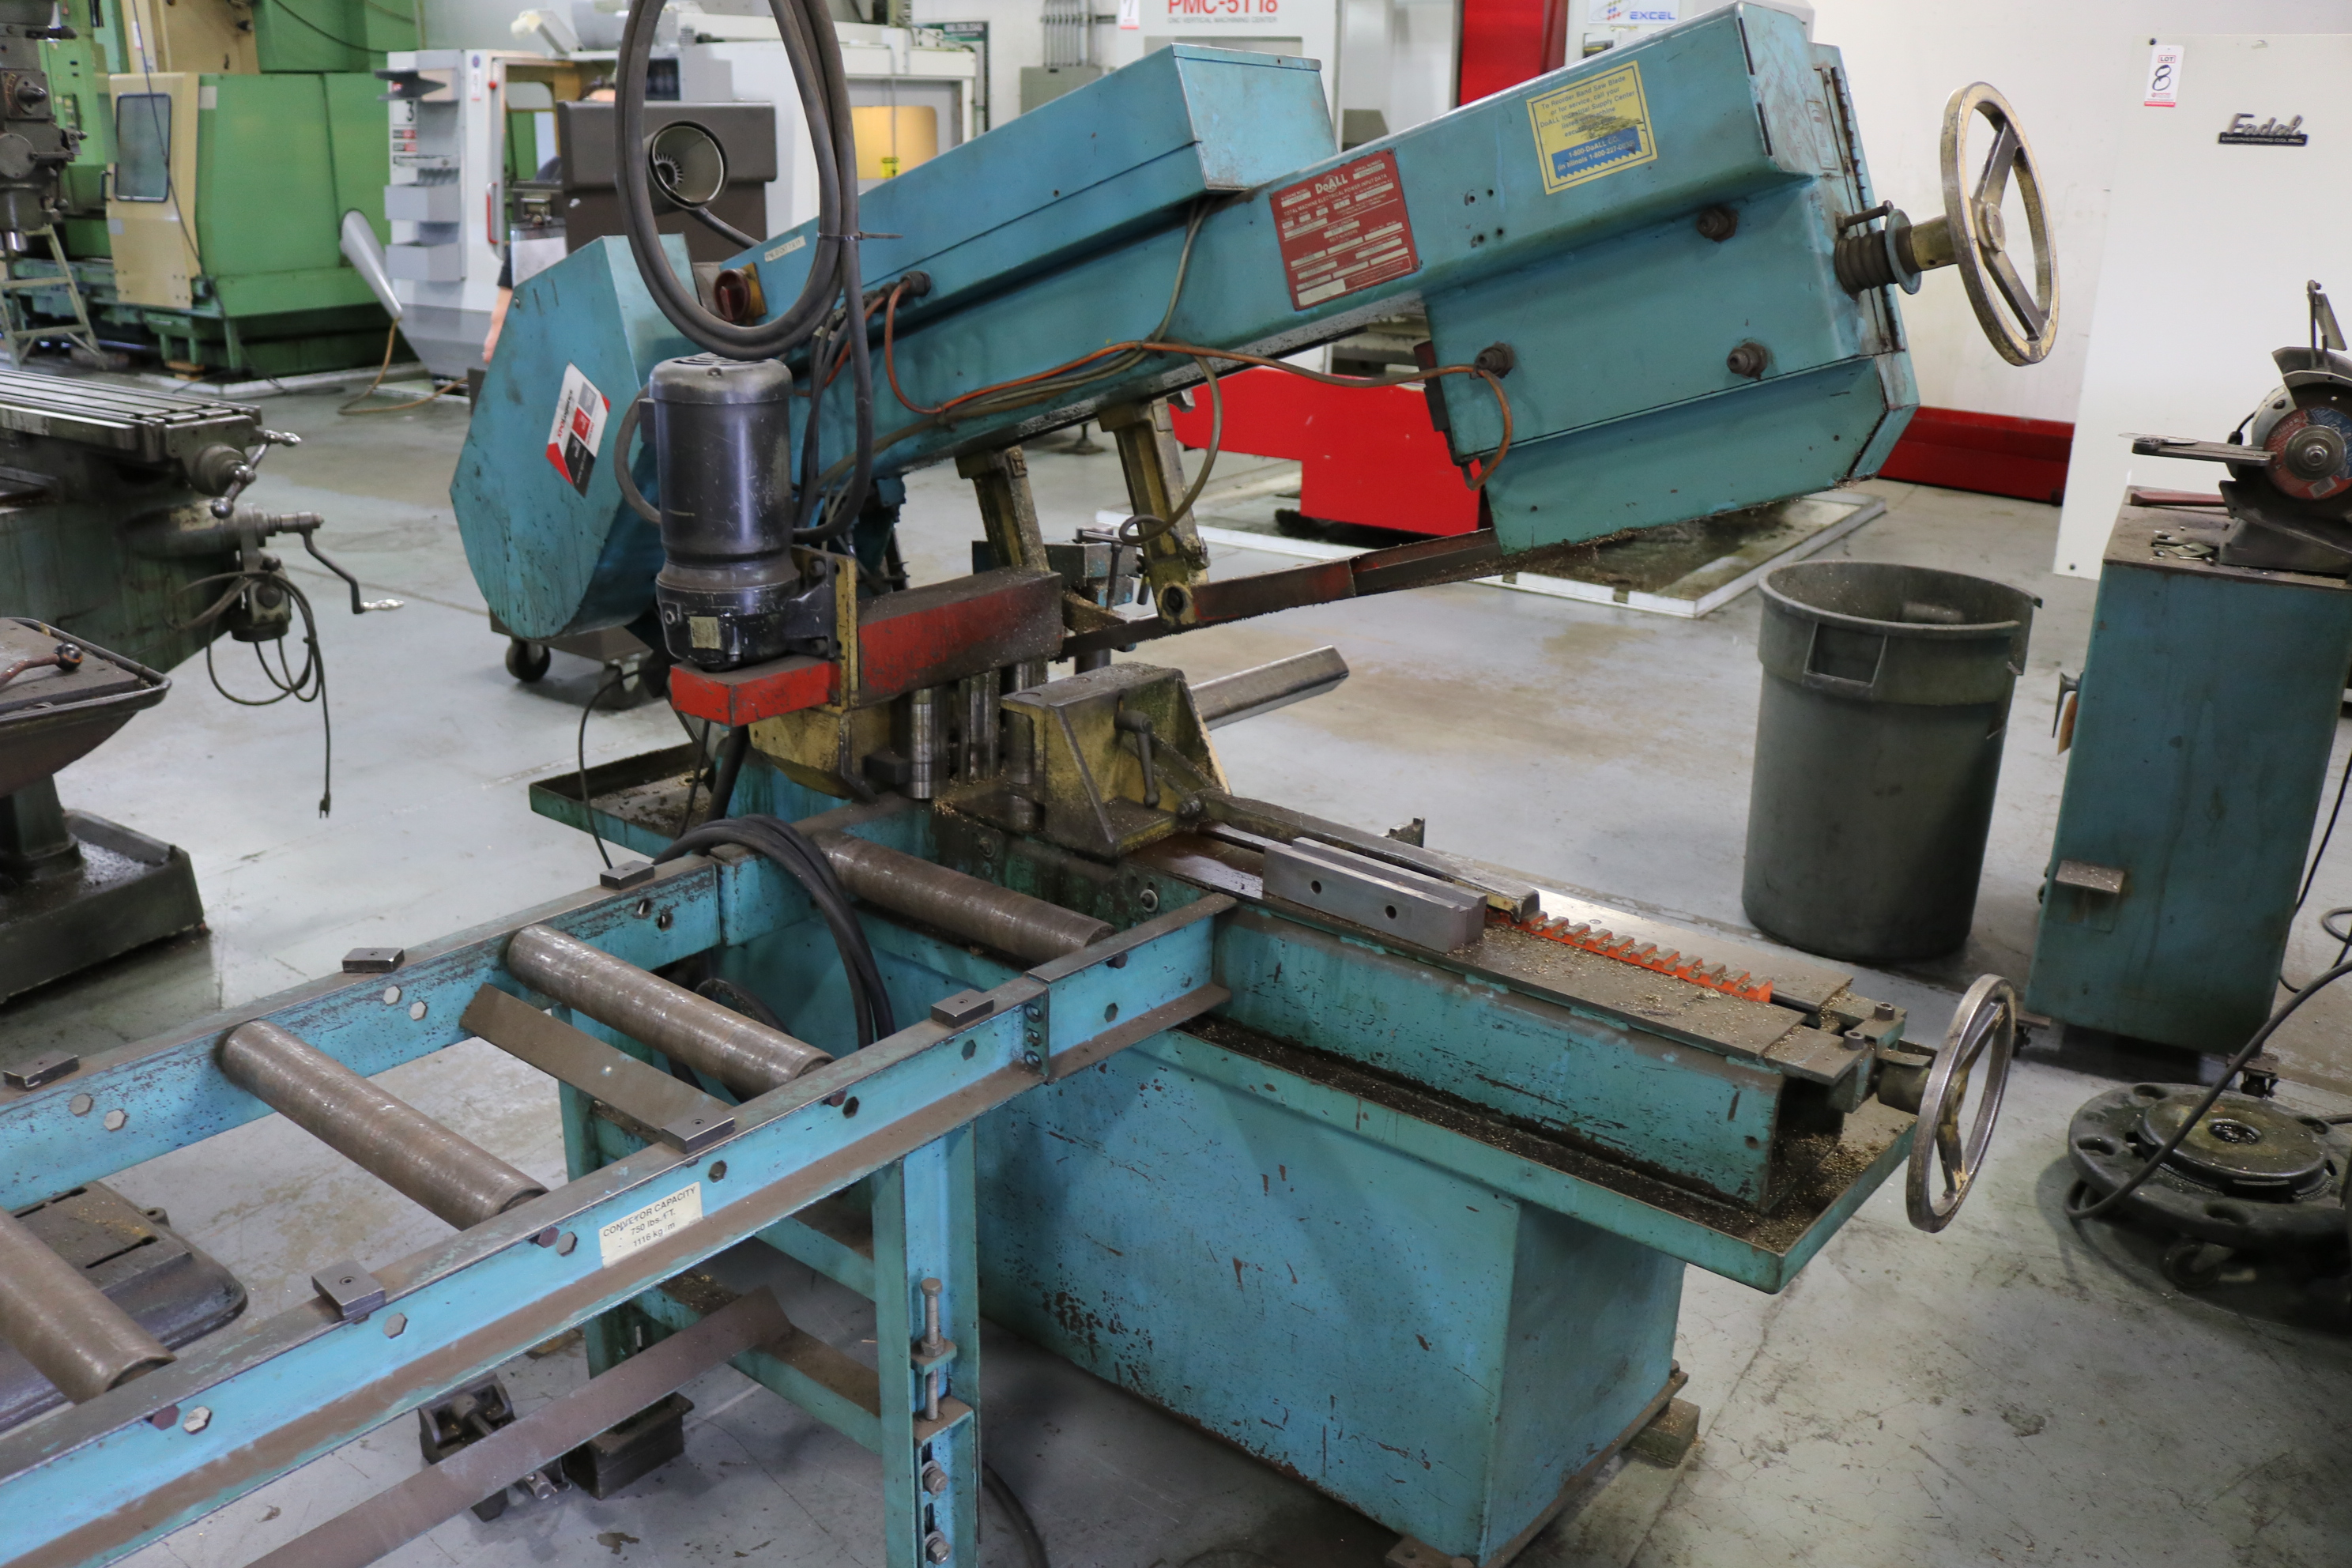 "Lot 4 - DOALL HORIZONTAL BAND SAW, MODEL C916A, 9"" X 16"" CAPACITY, X/N 502-93221, W/ OUT FEED CONVEYOR"